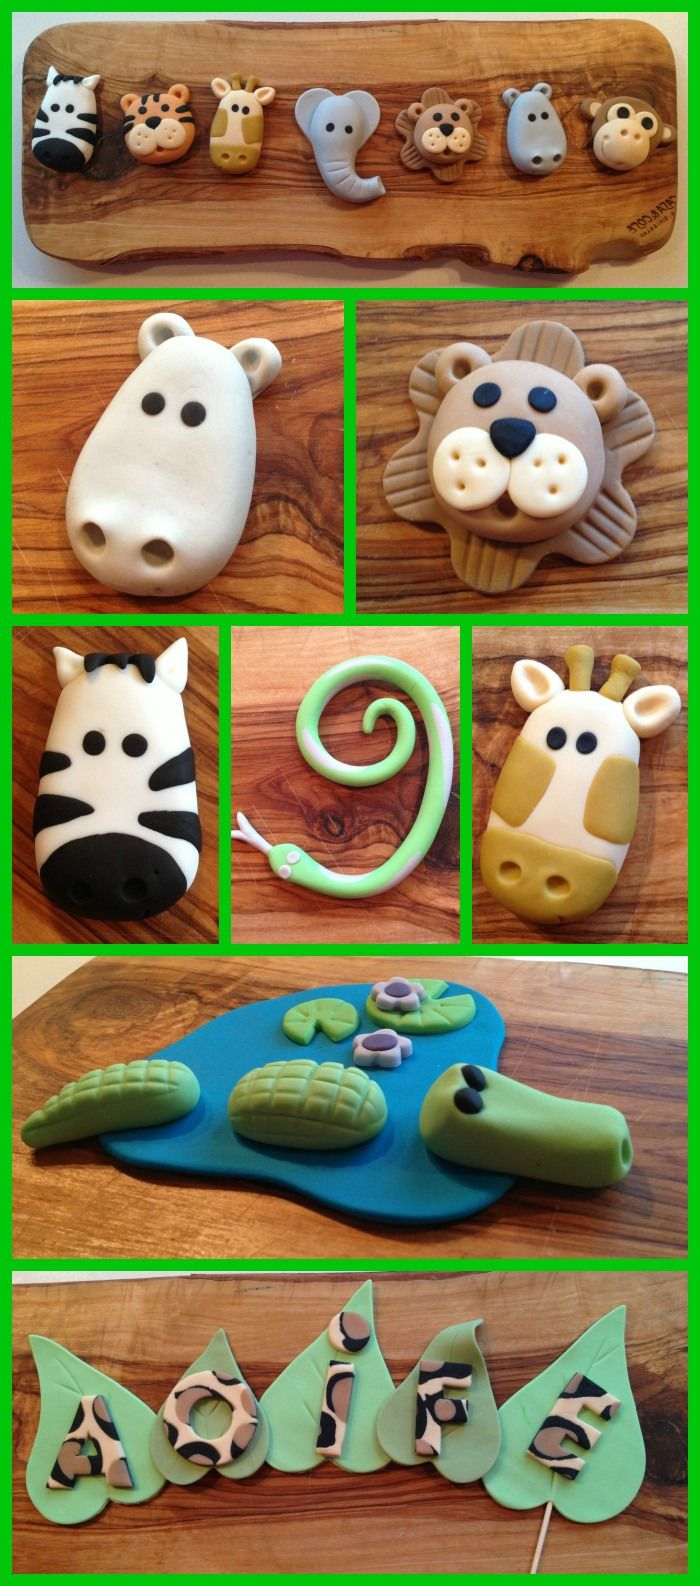 clay Cake would   in  nice store cake for Toppers  jungle   be fondant Jungles too gear Cakes toppers ideas Jungle Fondant cake Fondant outdoor healthy and